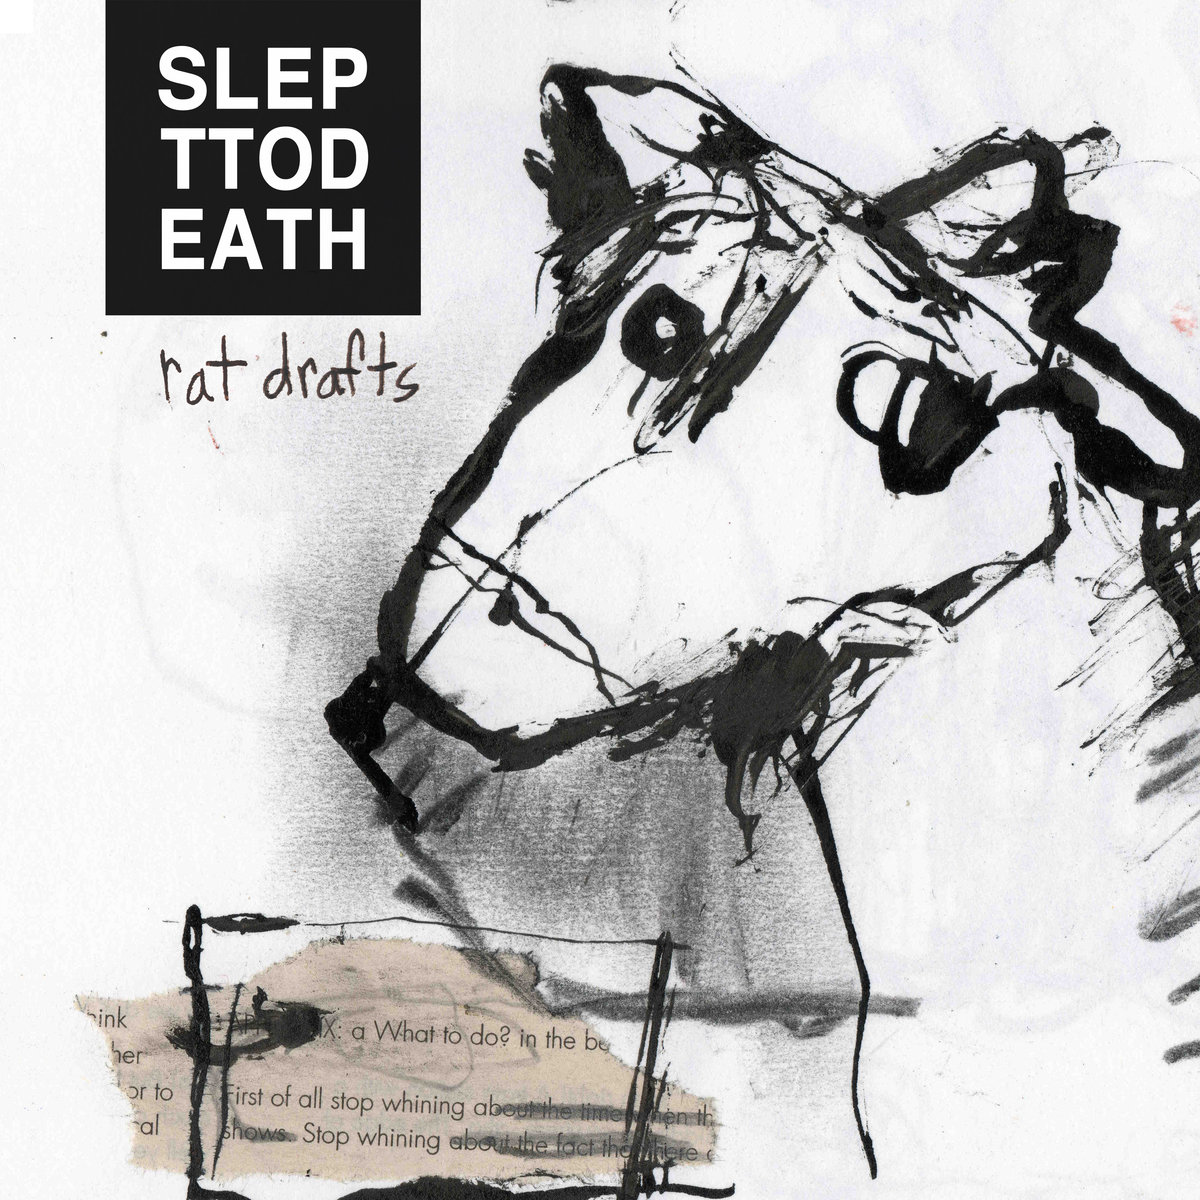 Slept To Death Rat Drafts Demo Album Art